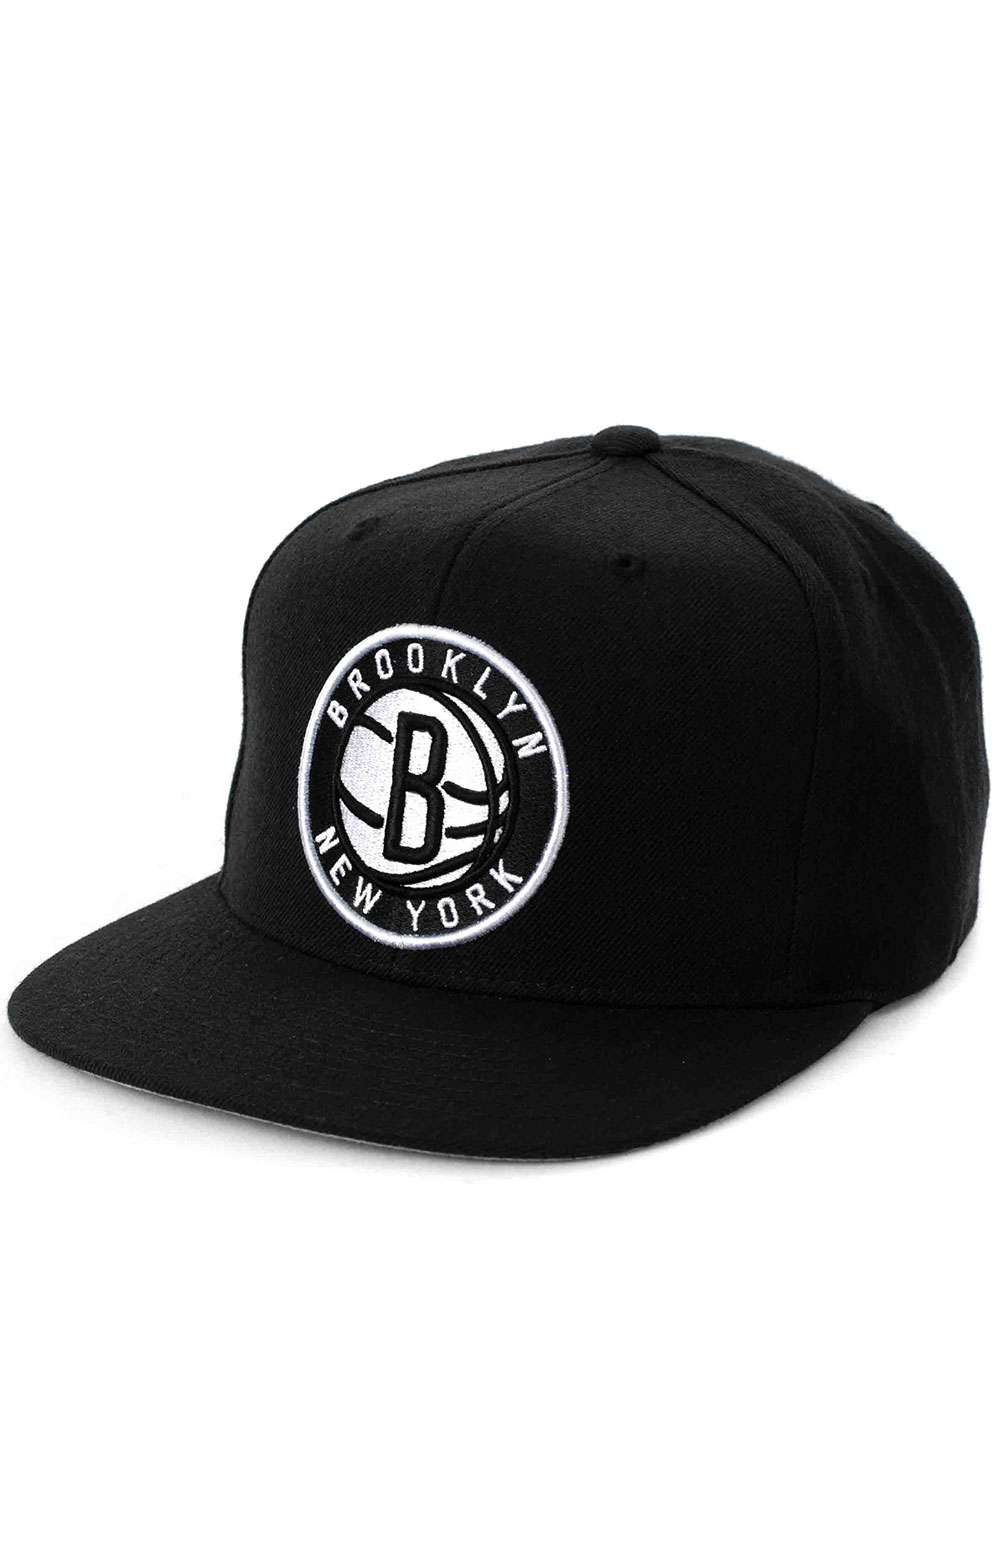 NBA Team Ground Snap-Back Hat - Nets